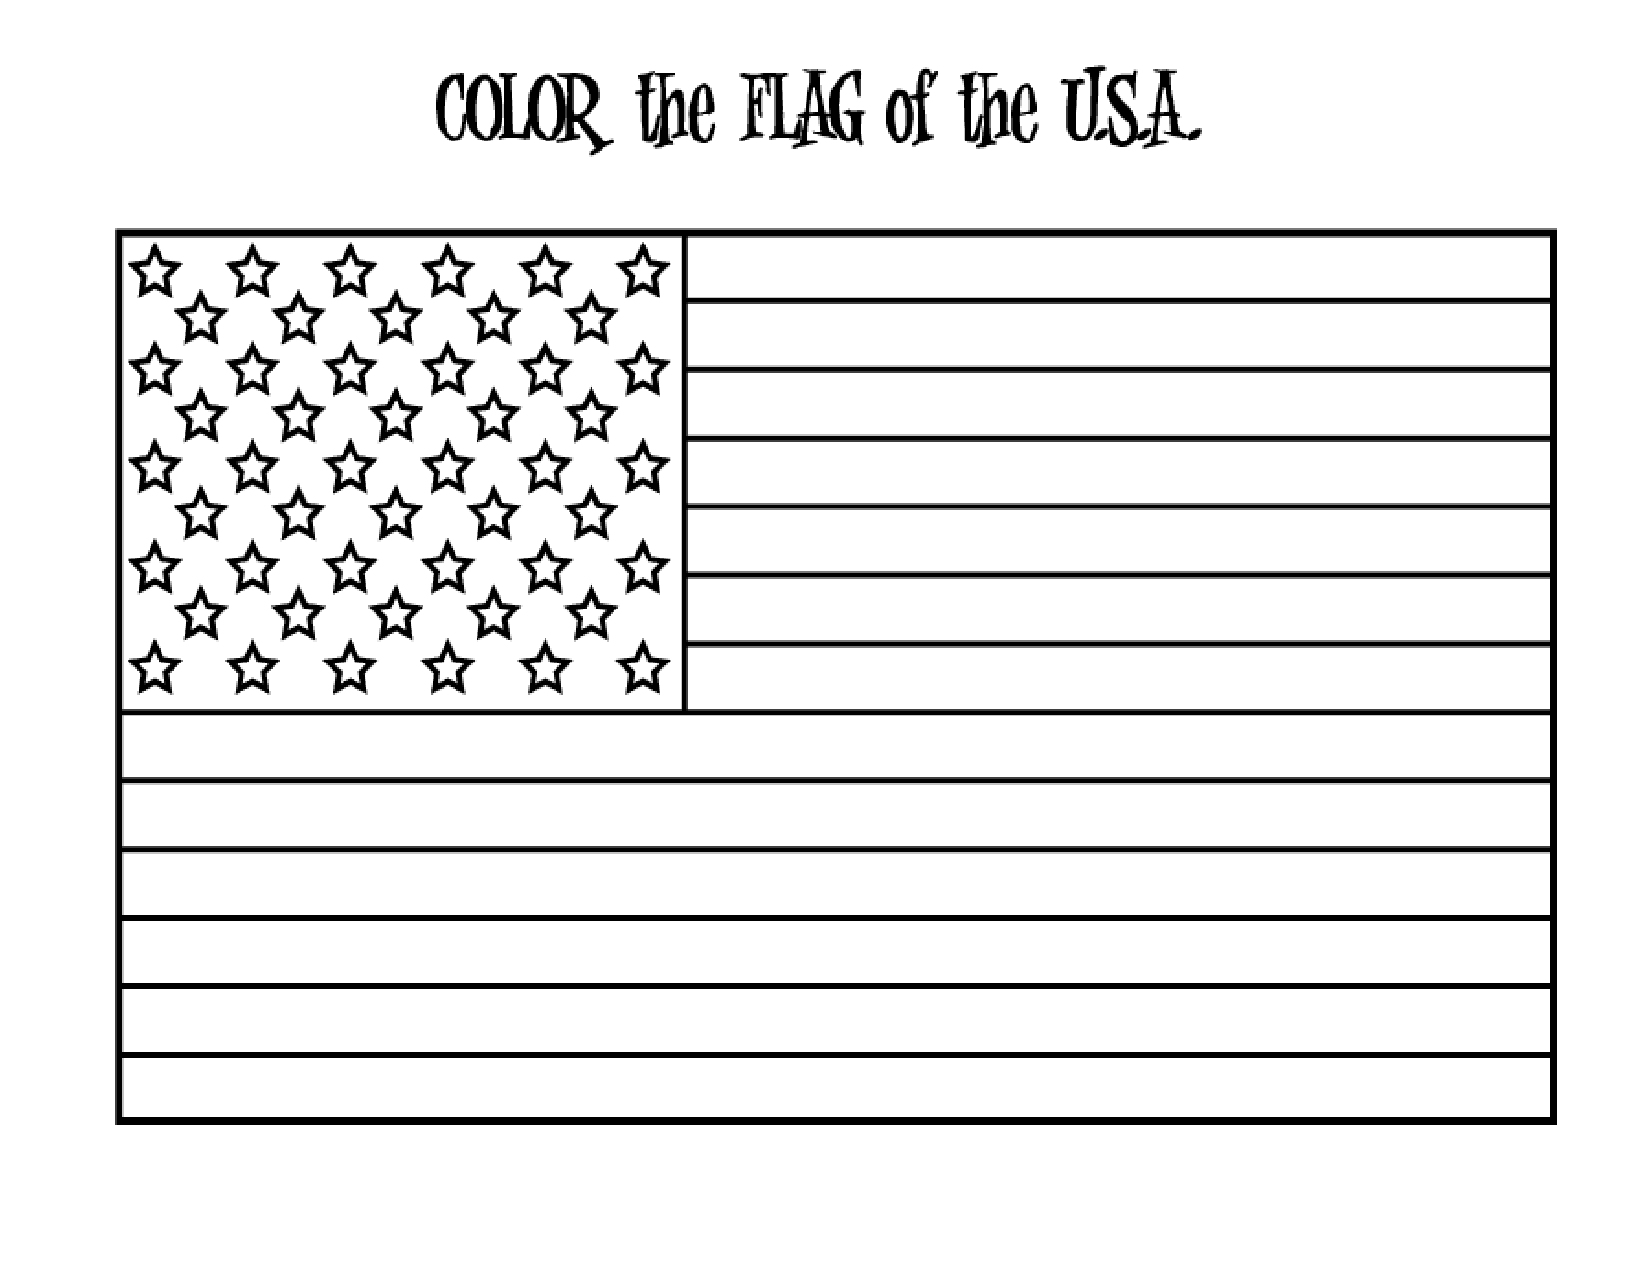 online flag coloring pages - photo#19